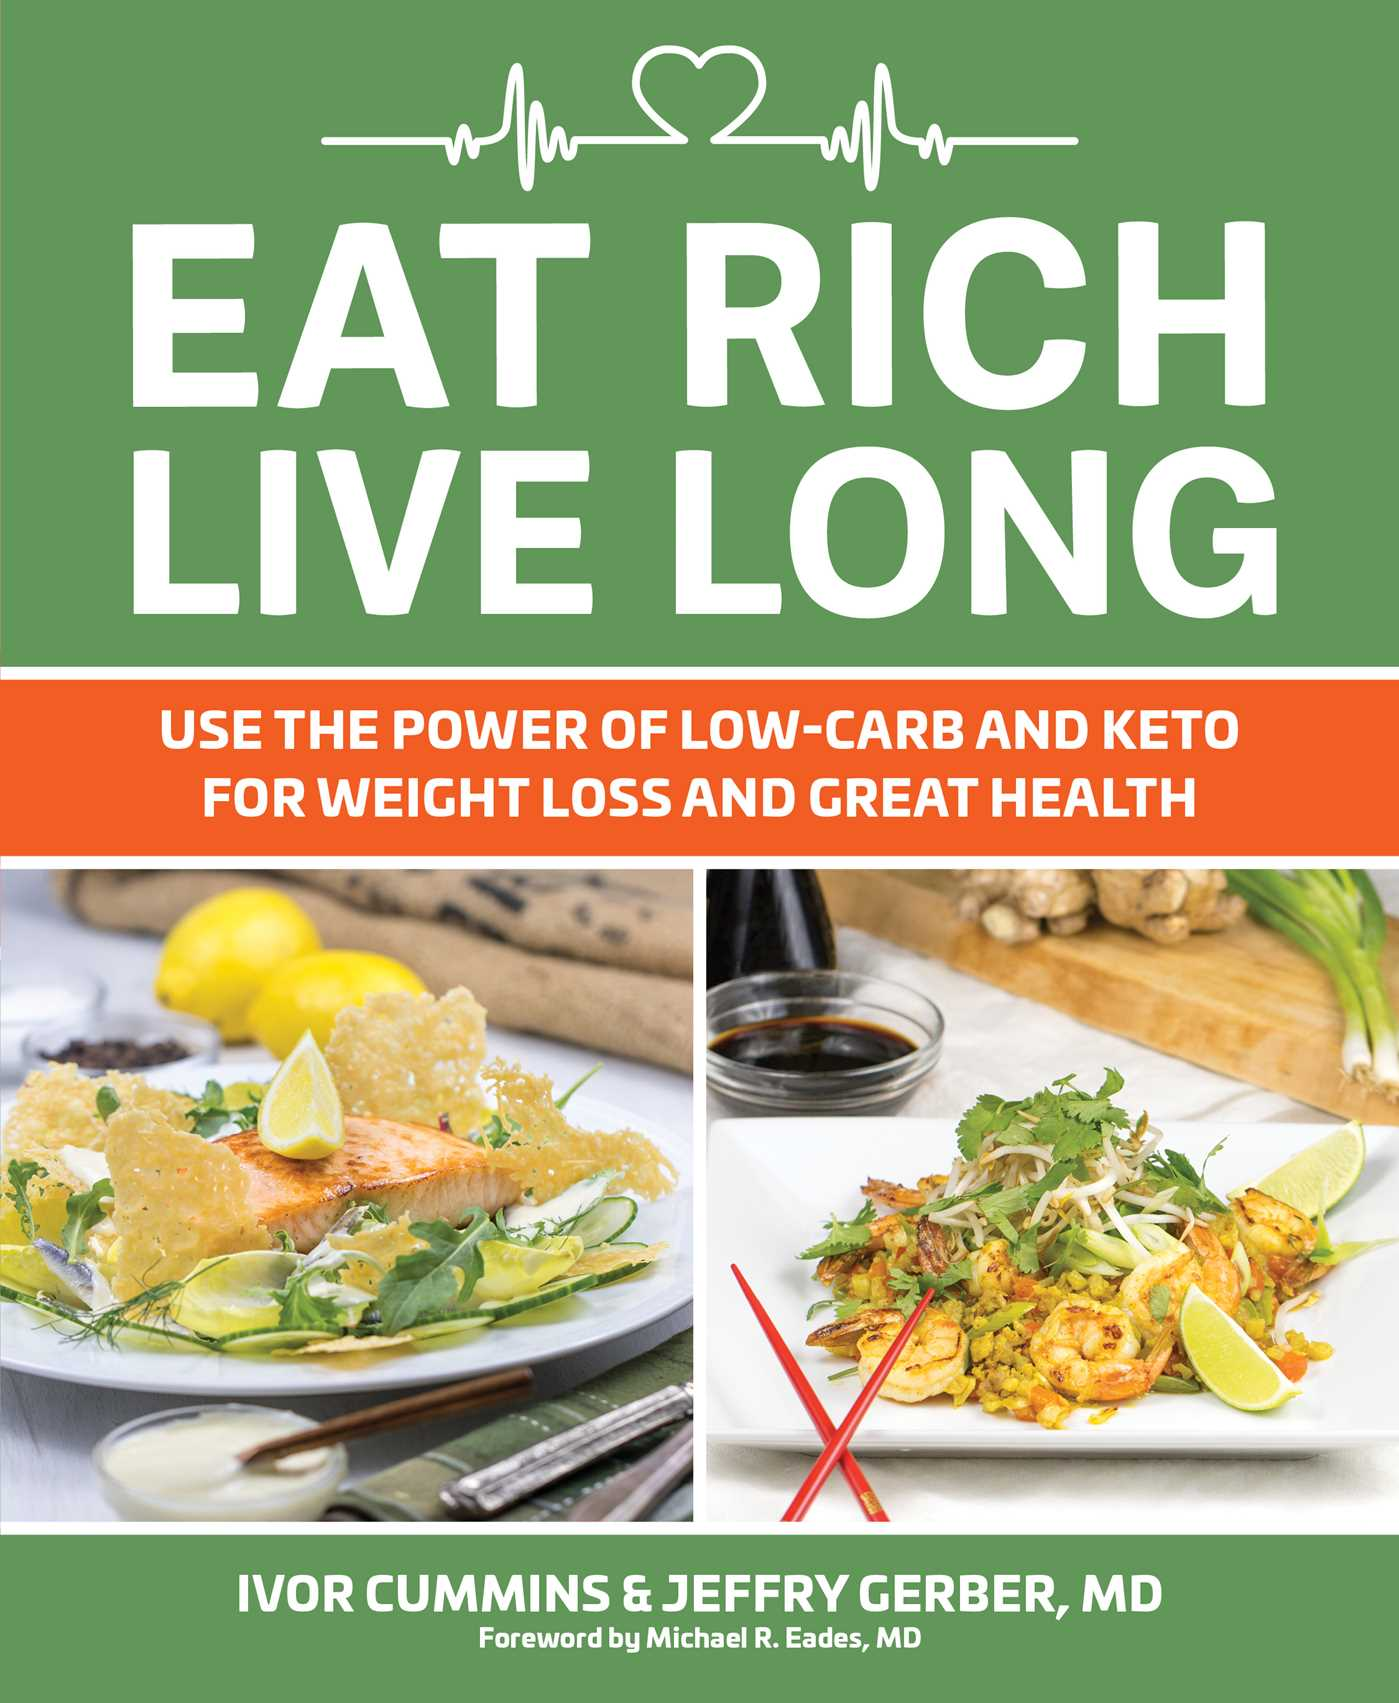 Lose weight by eating carbs